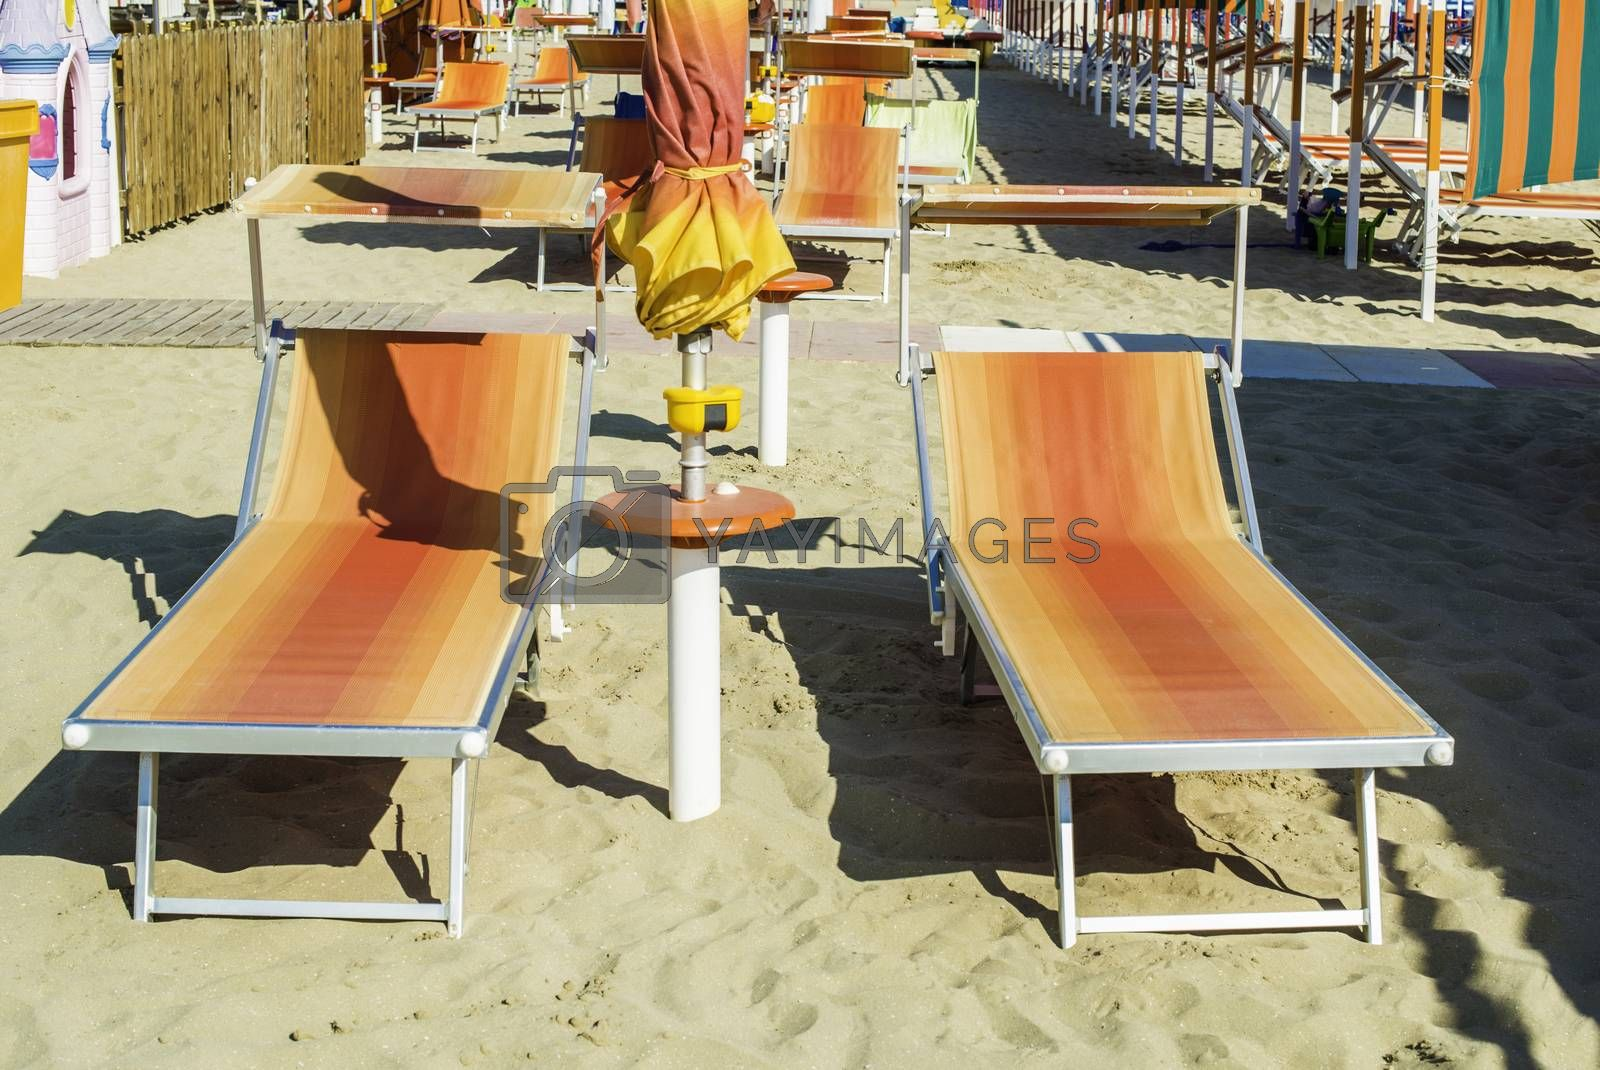 Orange sunbeds and umbrellas on the beach.